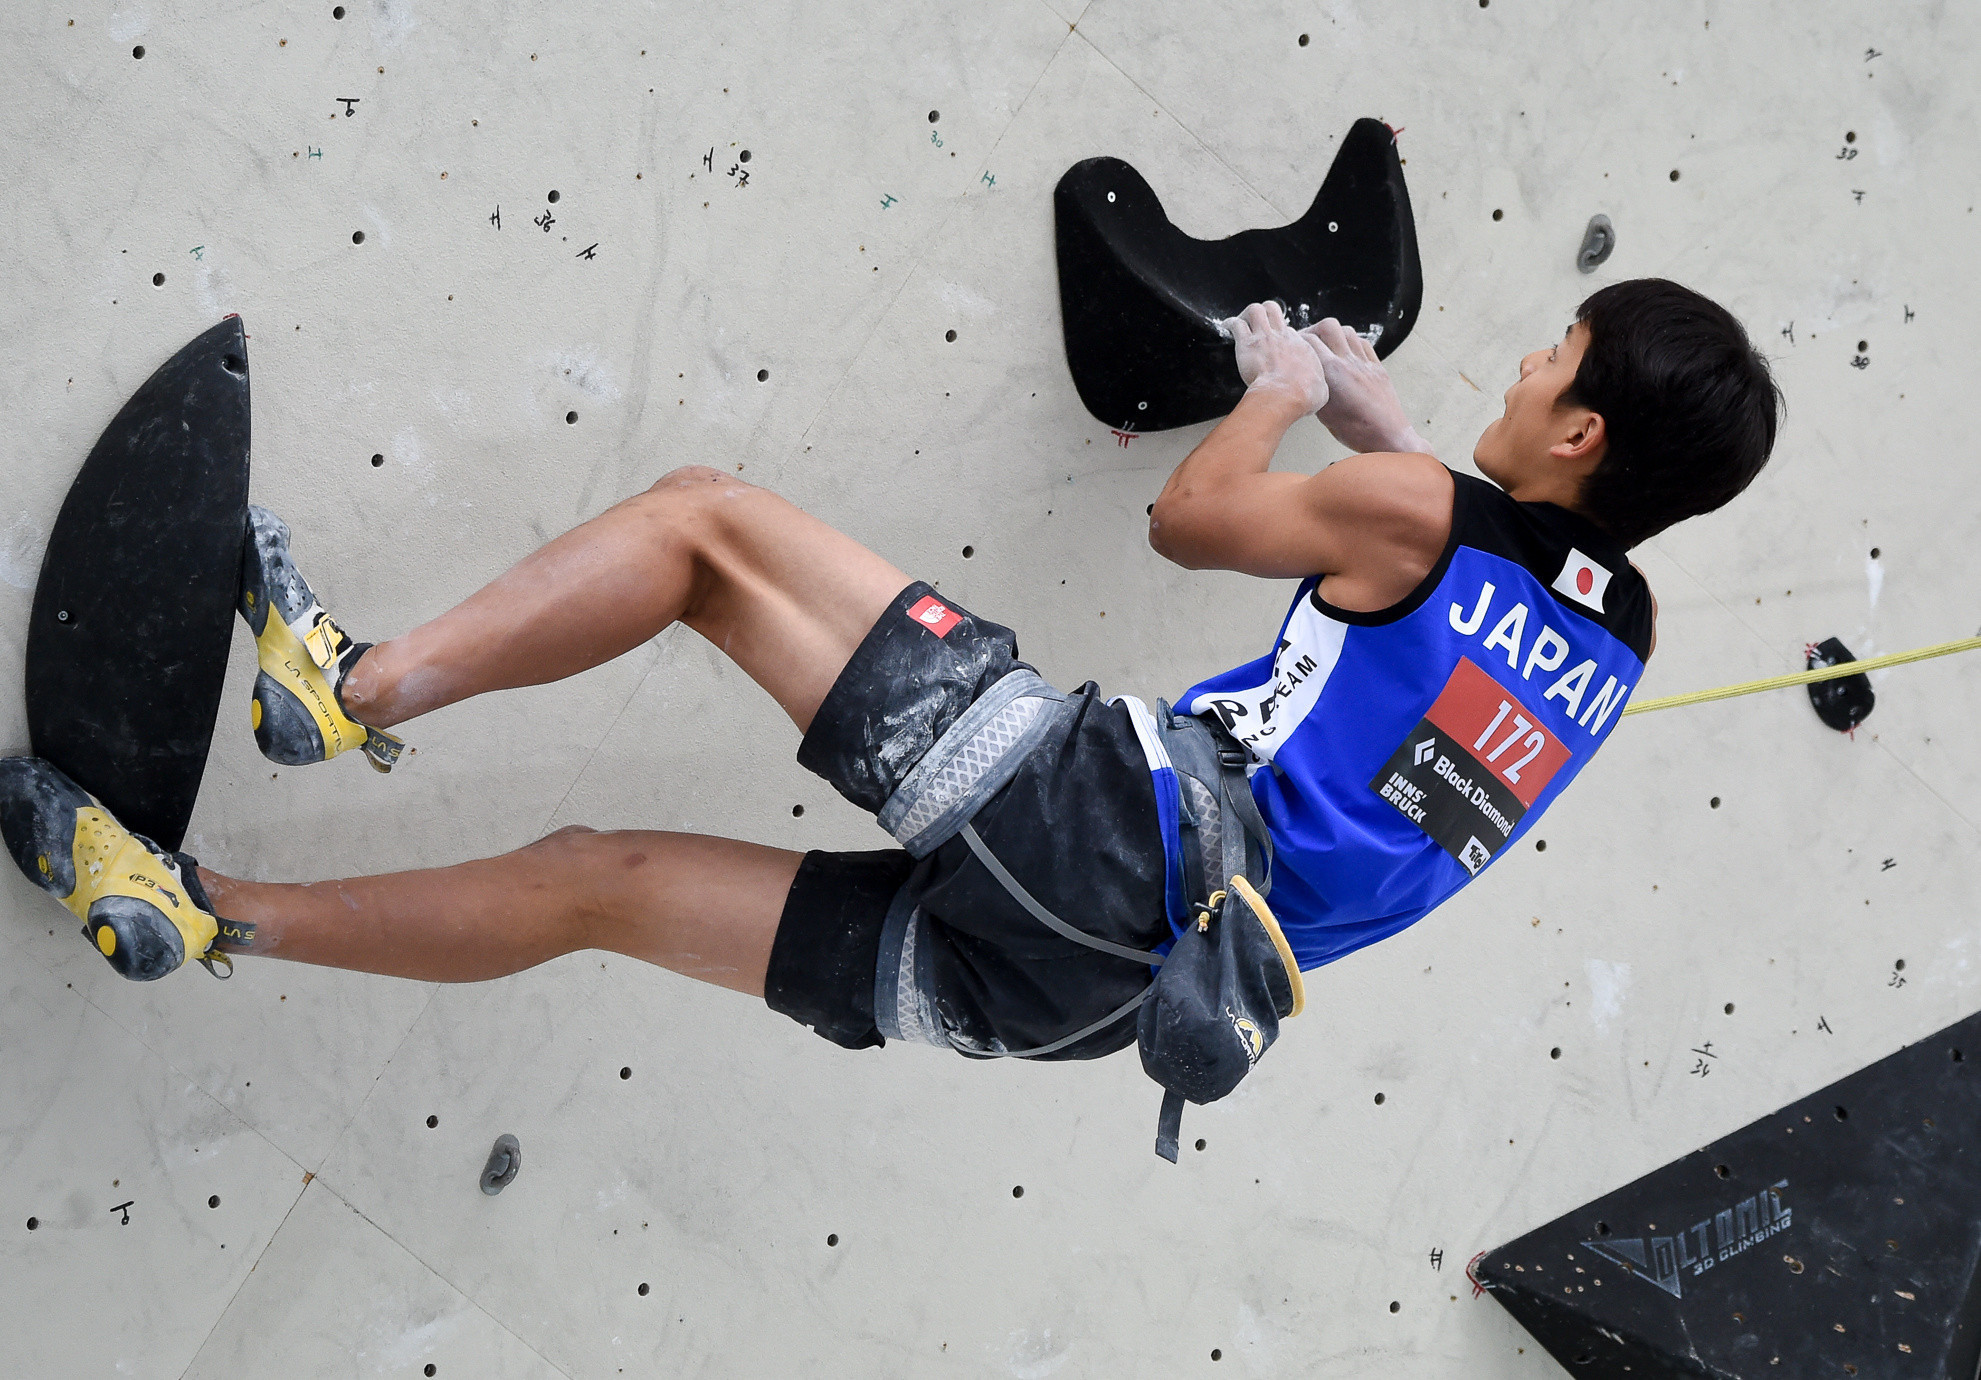 Japan win two of three golds on day three of IFSC Youth World Championships